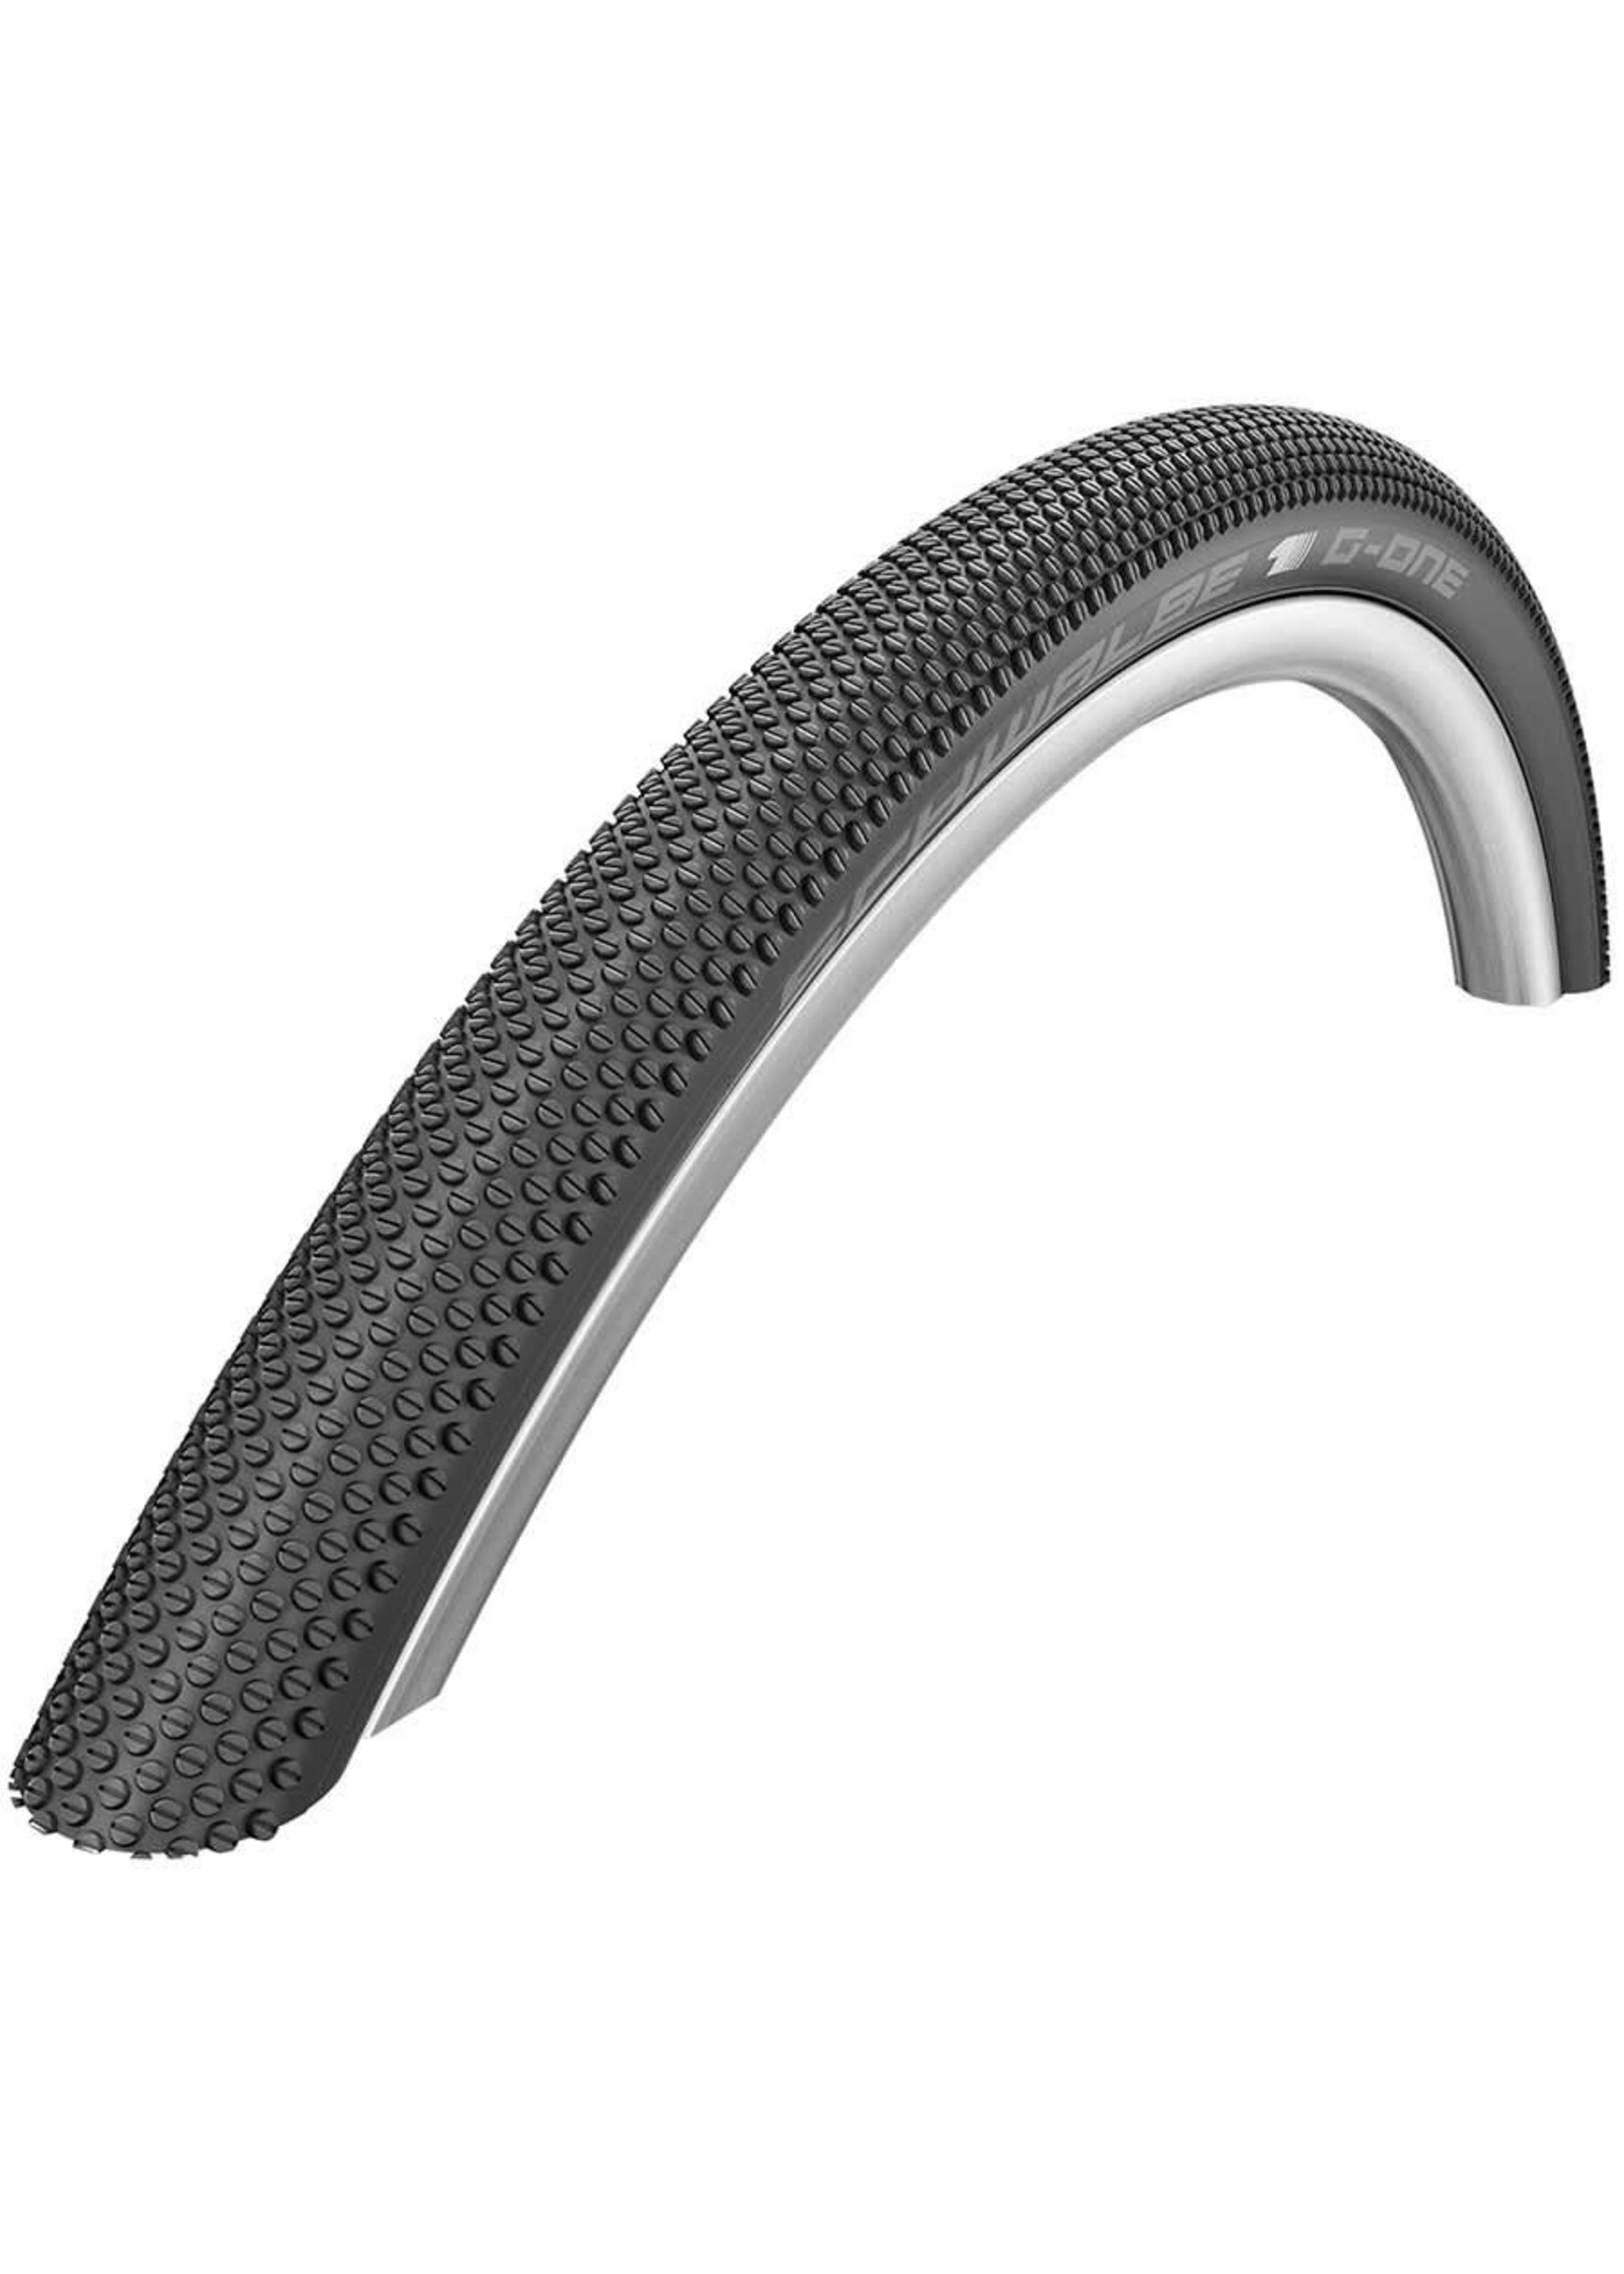 Schwalbe, G-One Allround, 700x35C, Folding, OneStar, Tubeless Ready, MicroSkin, 127TPI, 45-70PSI, Noir